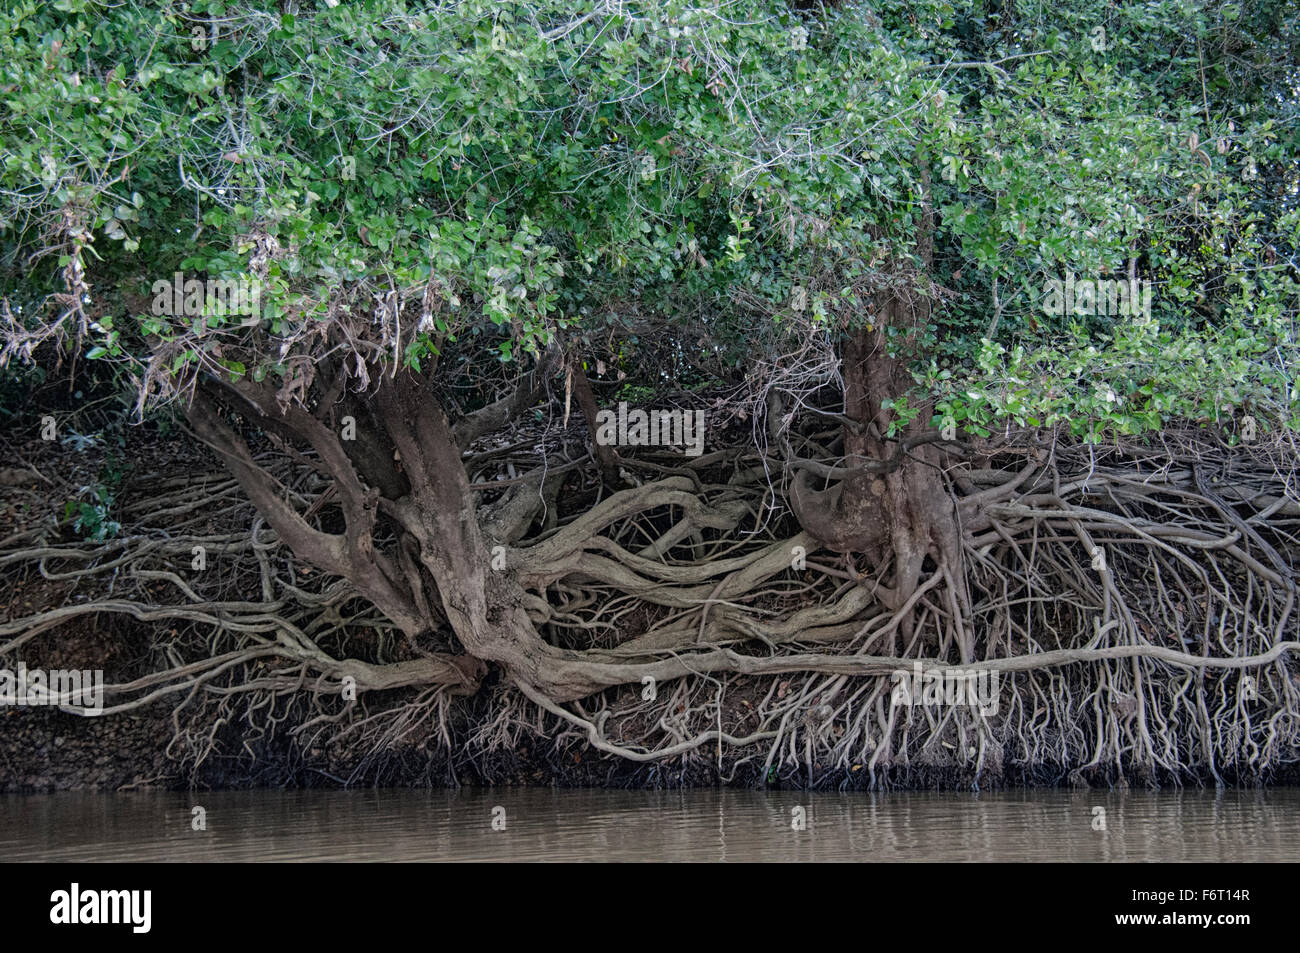 During the dry season the river level goes down, exposing tree roots on riverbanks in the Pantanal, Mato Grosso, - Stock Image